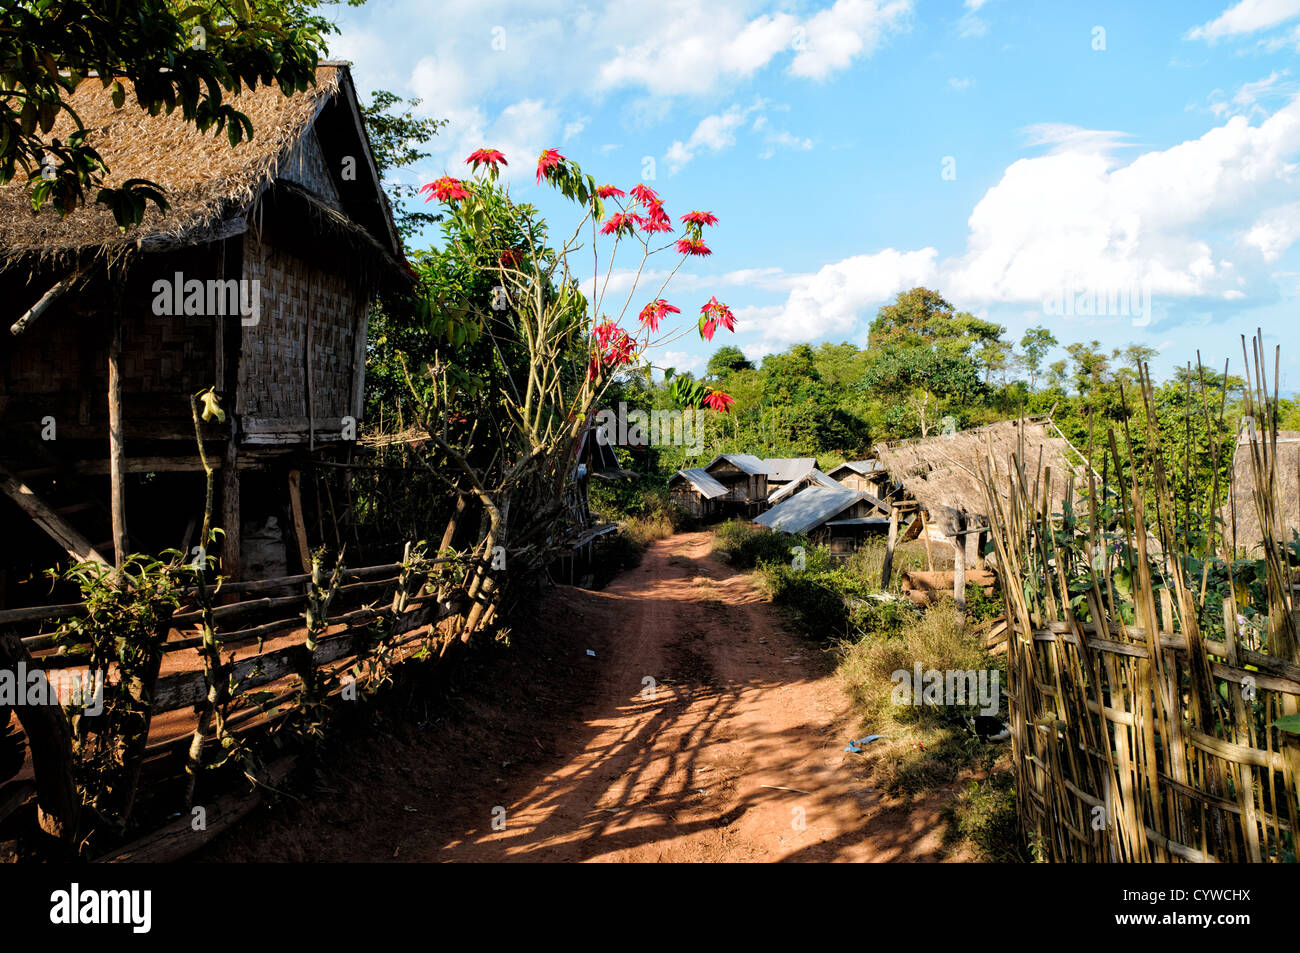 LUANG NAMTHA, Laos - A small village in Luang Namtha province in northern Laos. - Stock Image